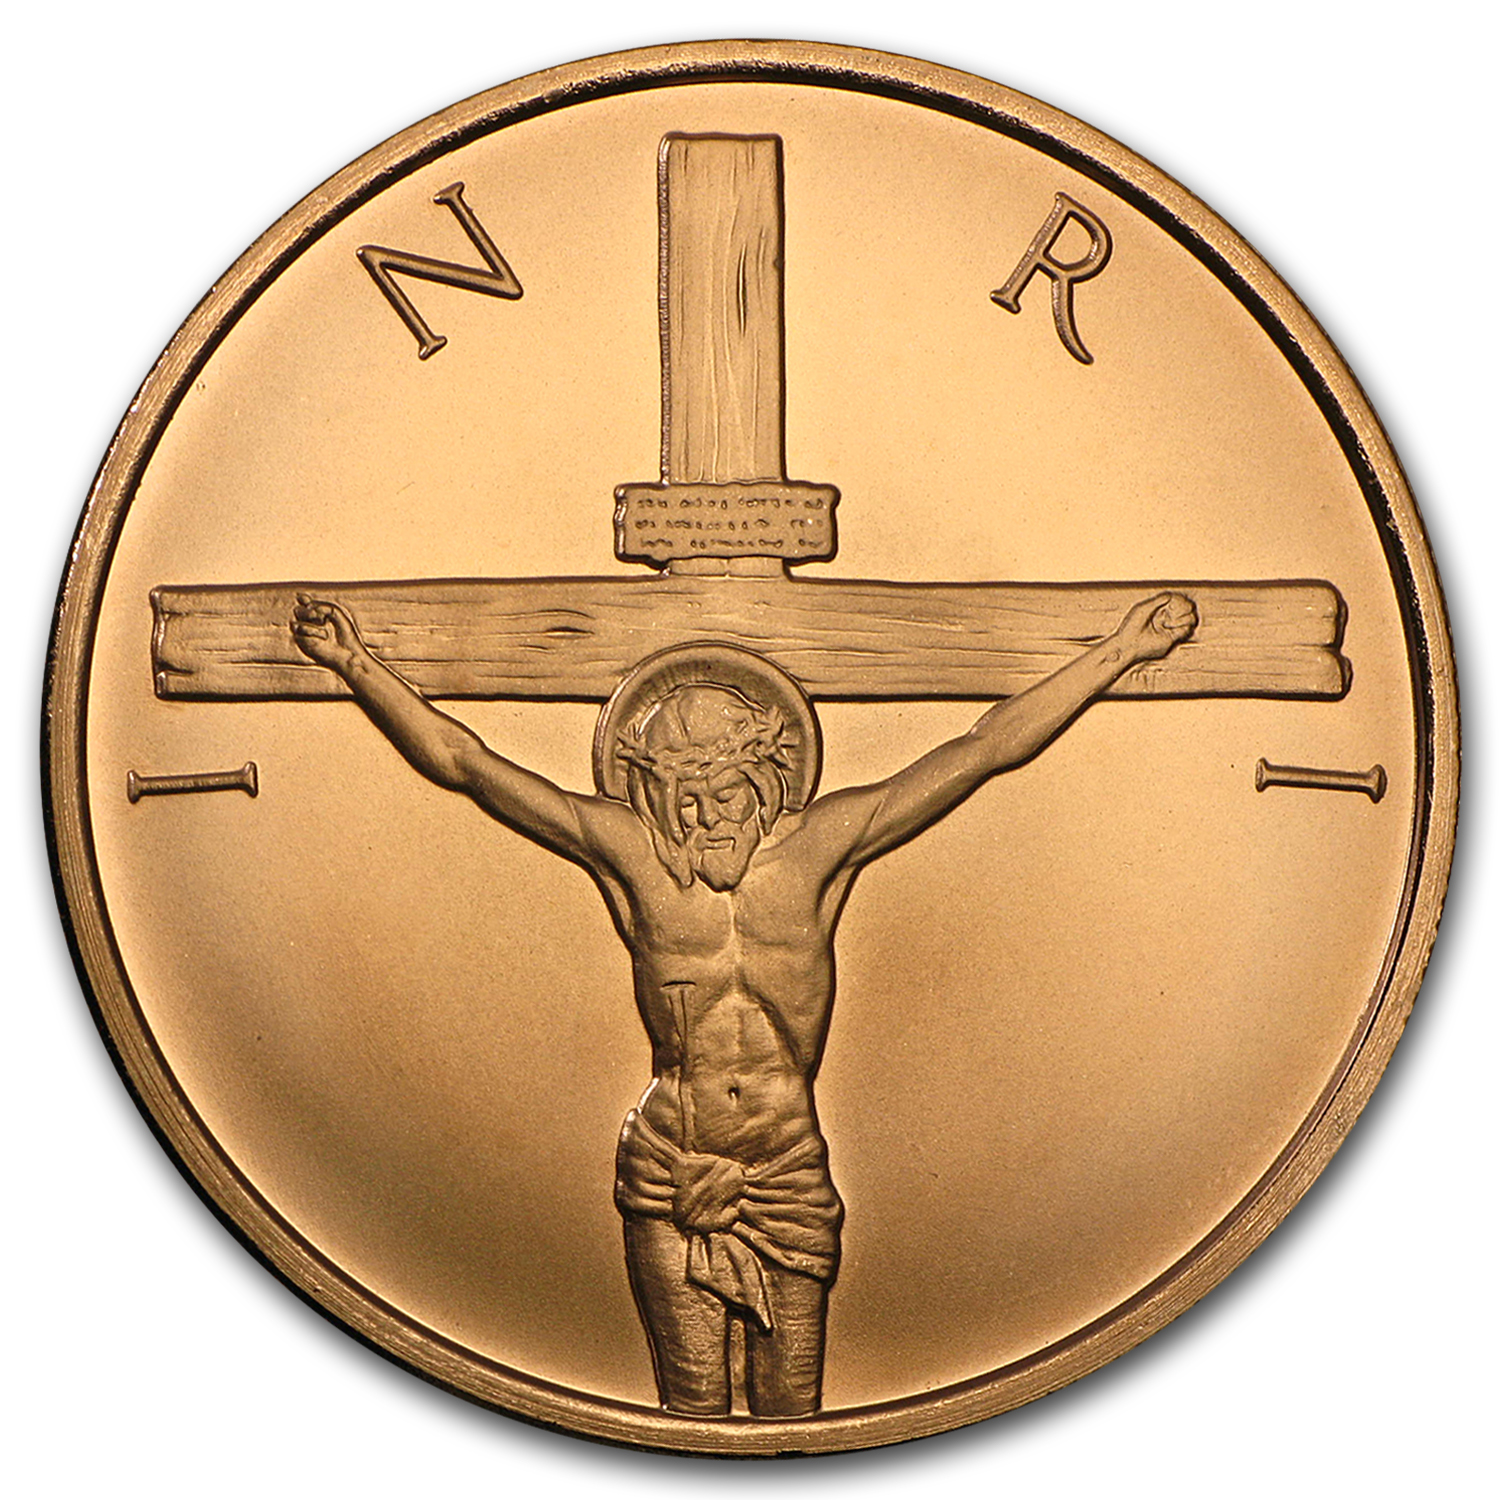 2016 1 oz Copper Round - Crucifixion